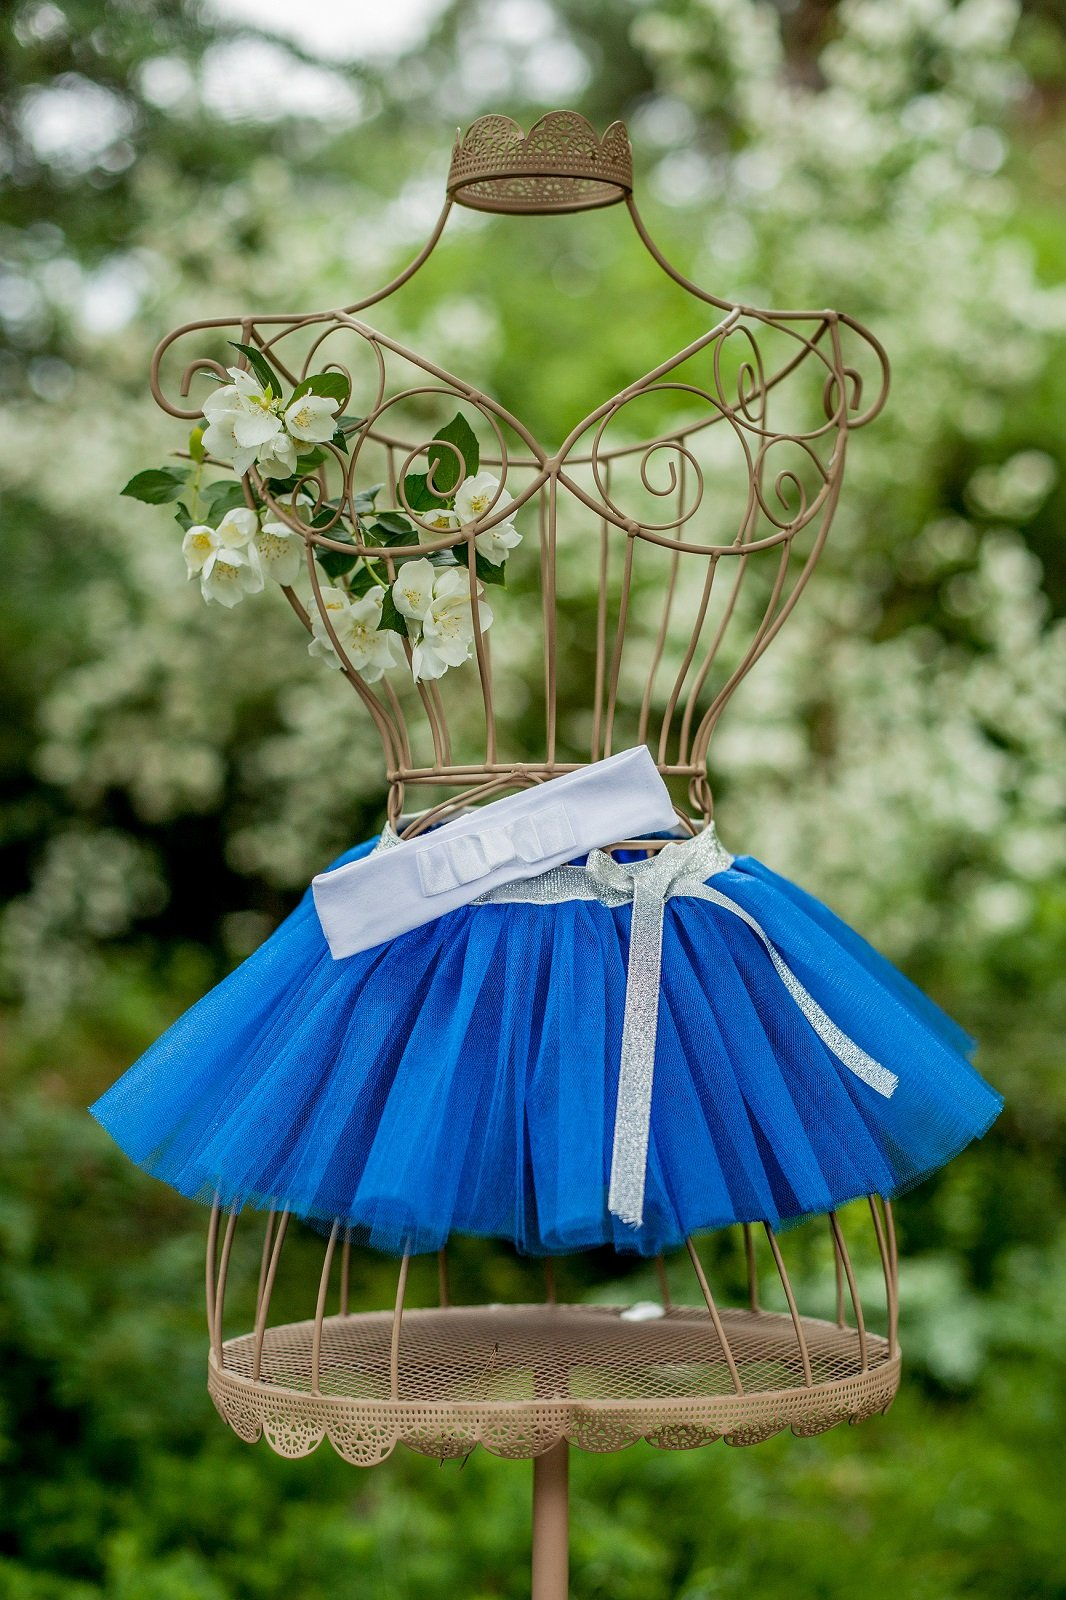 This is Blue Baby Tutu Skirt.